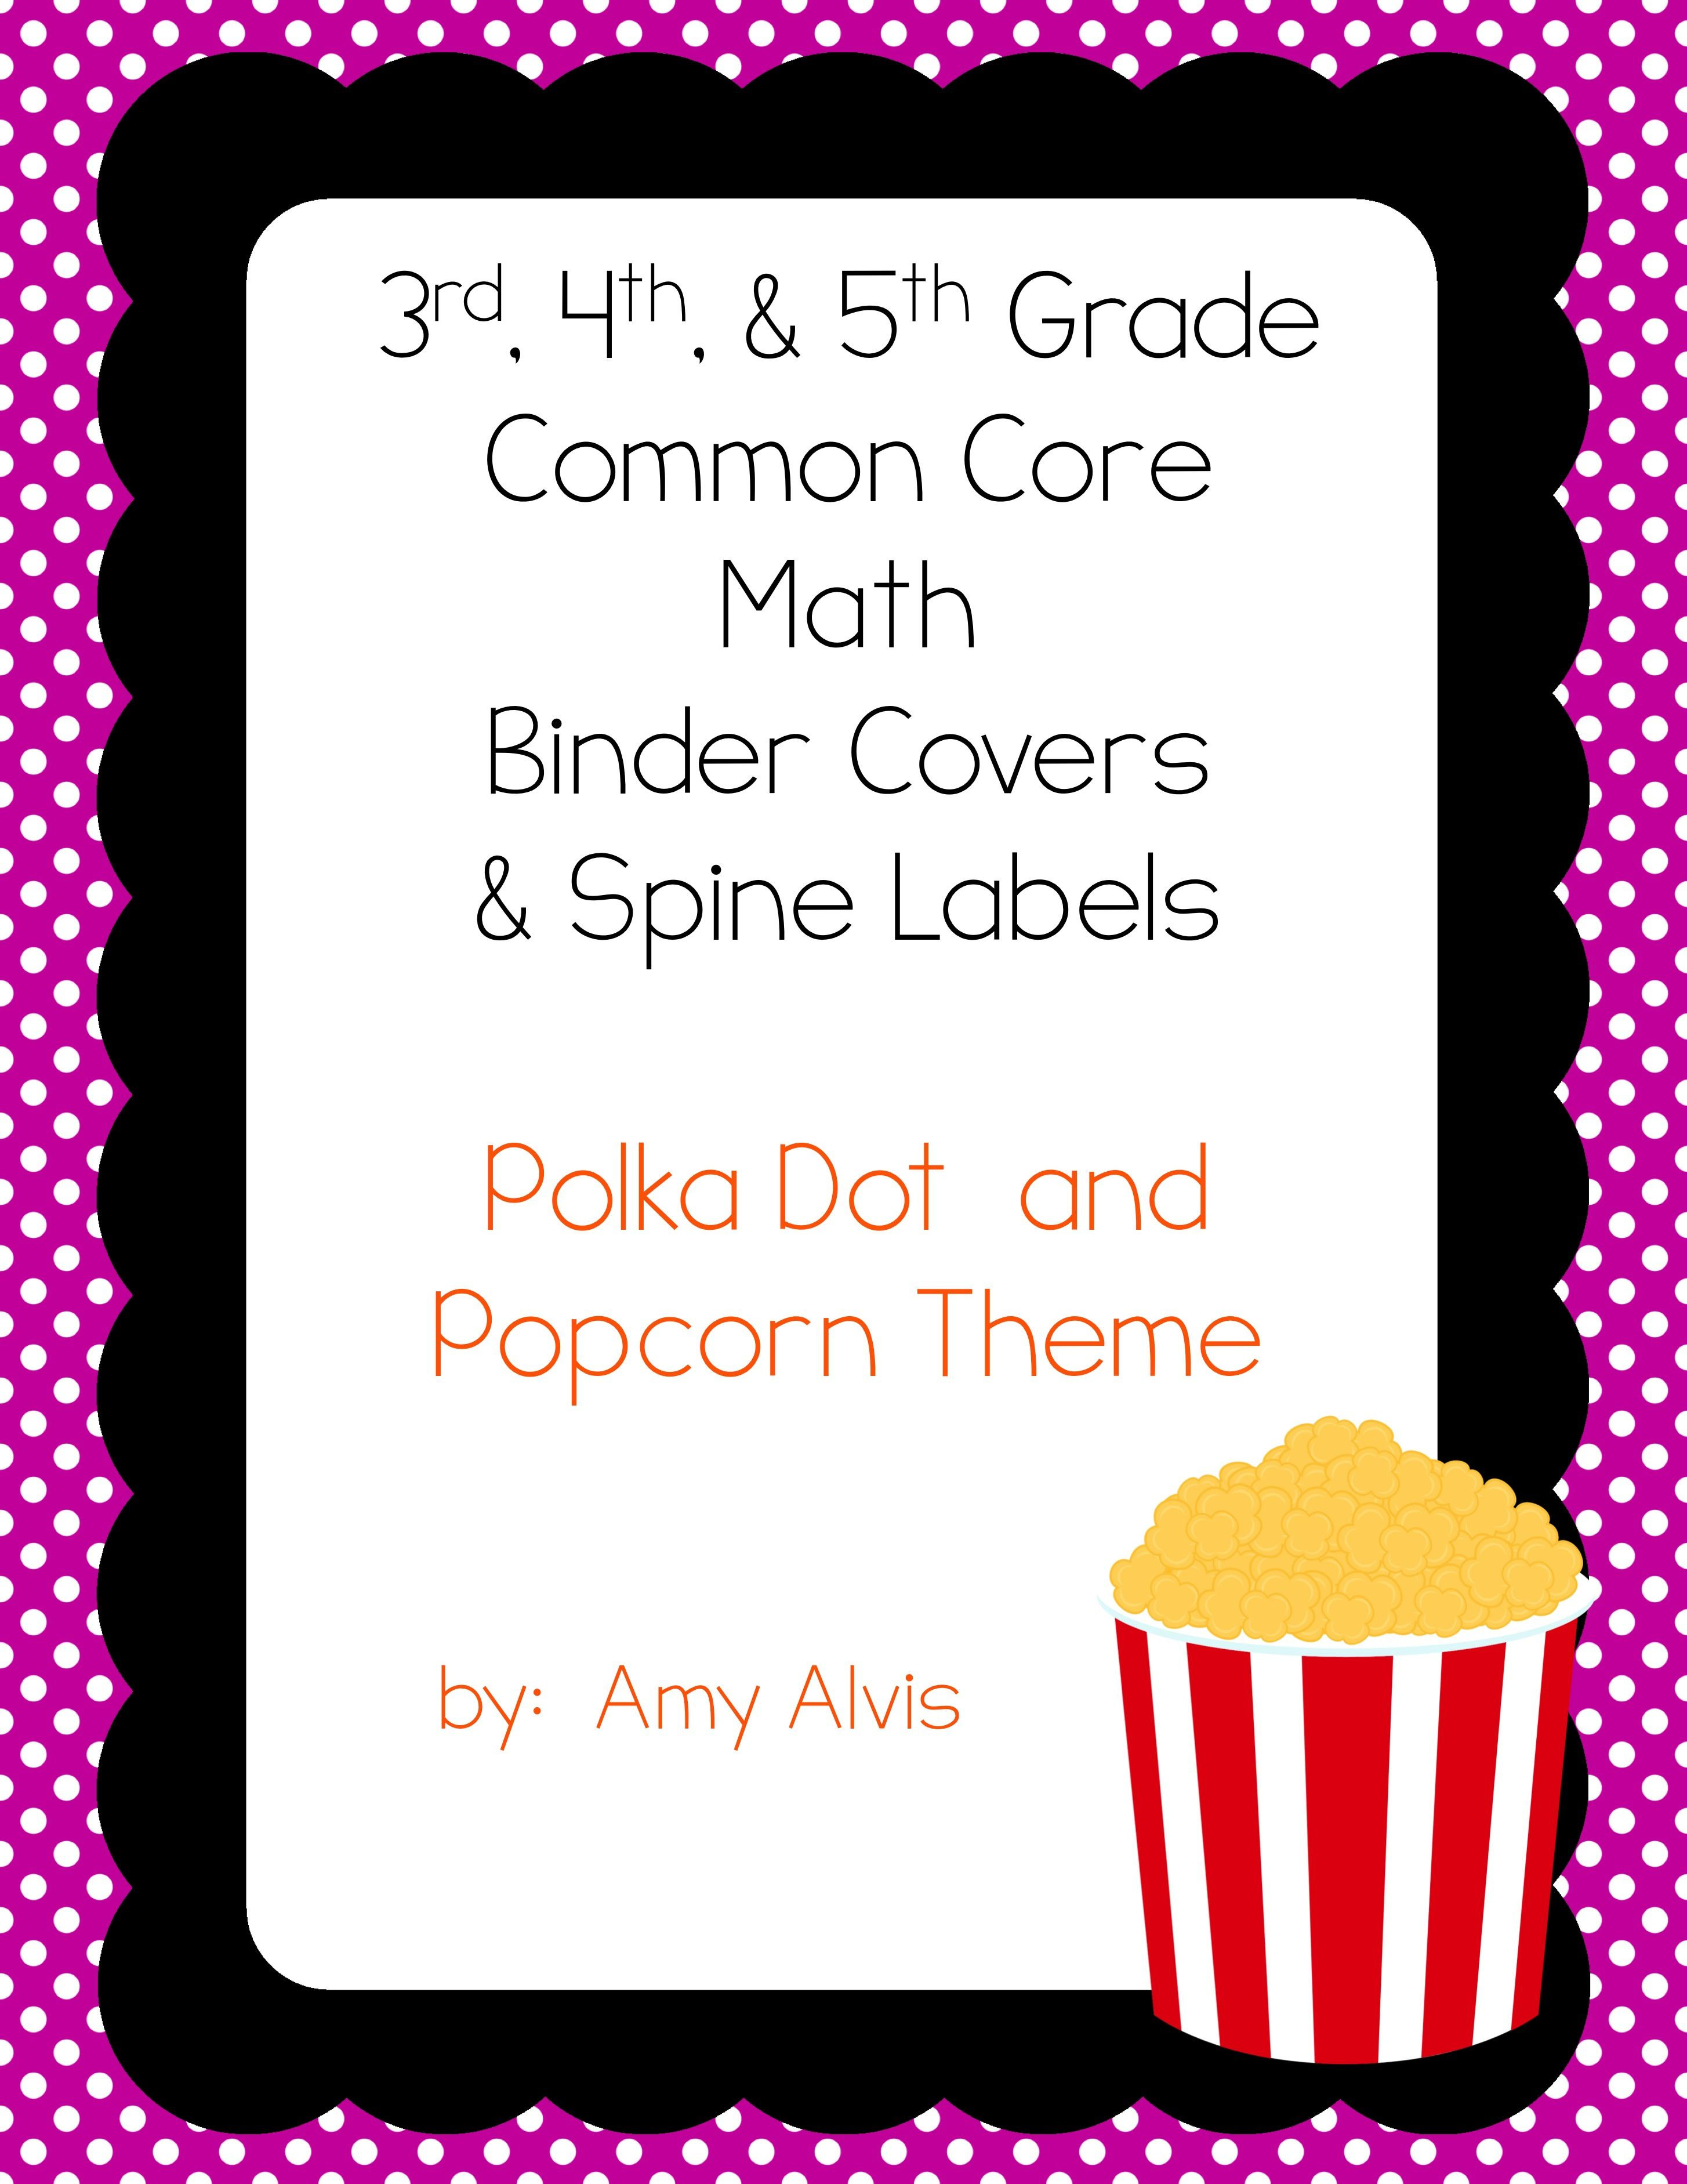 CCSS Math Binder Covers and Spine Labels - 3rd - 5th grade - Popcorn theme, $